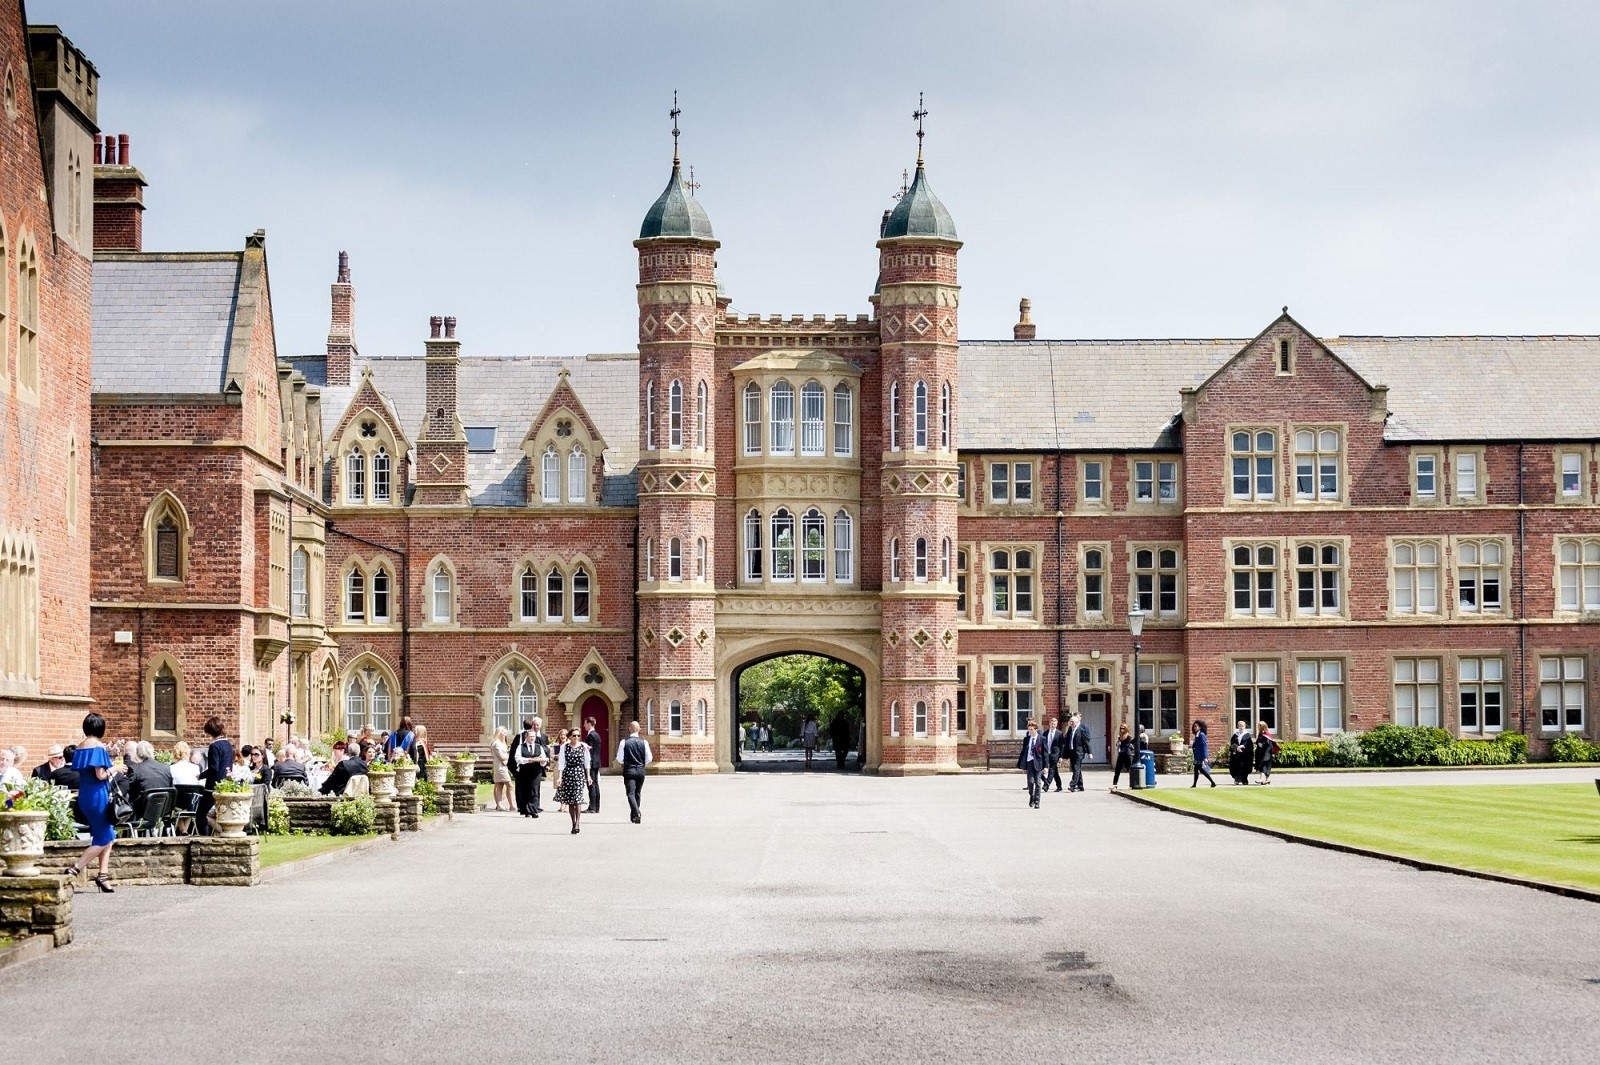 Independend Boarding Rossall School – Fleetwood, Lancashire